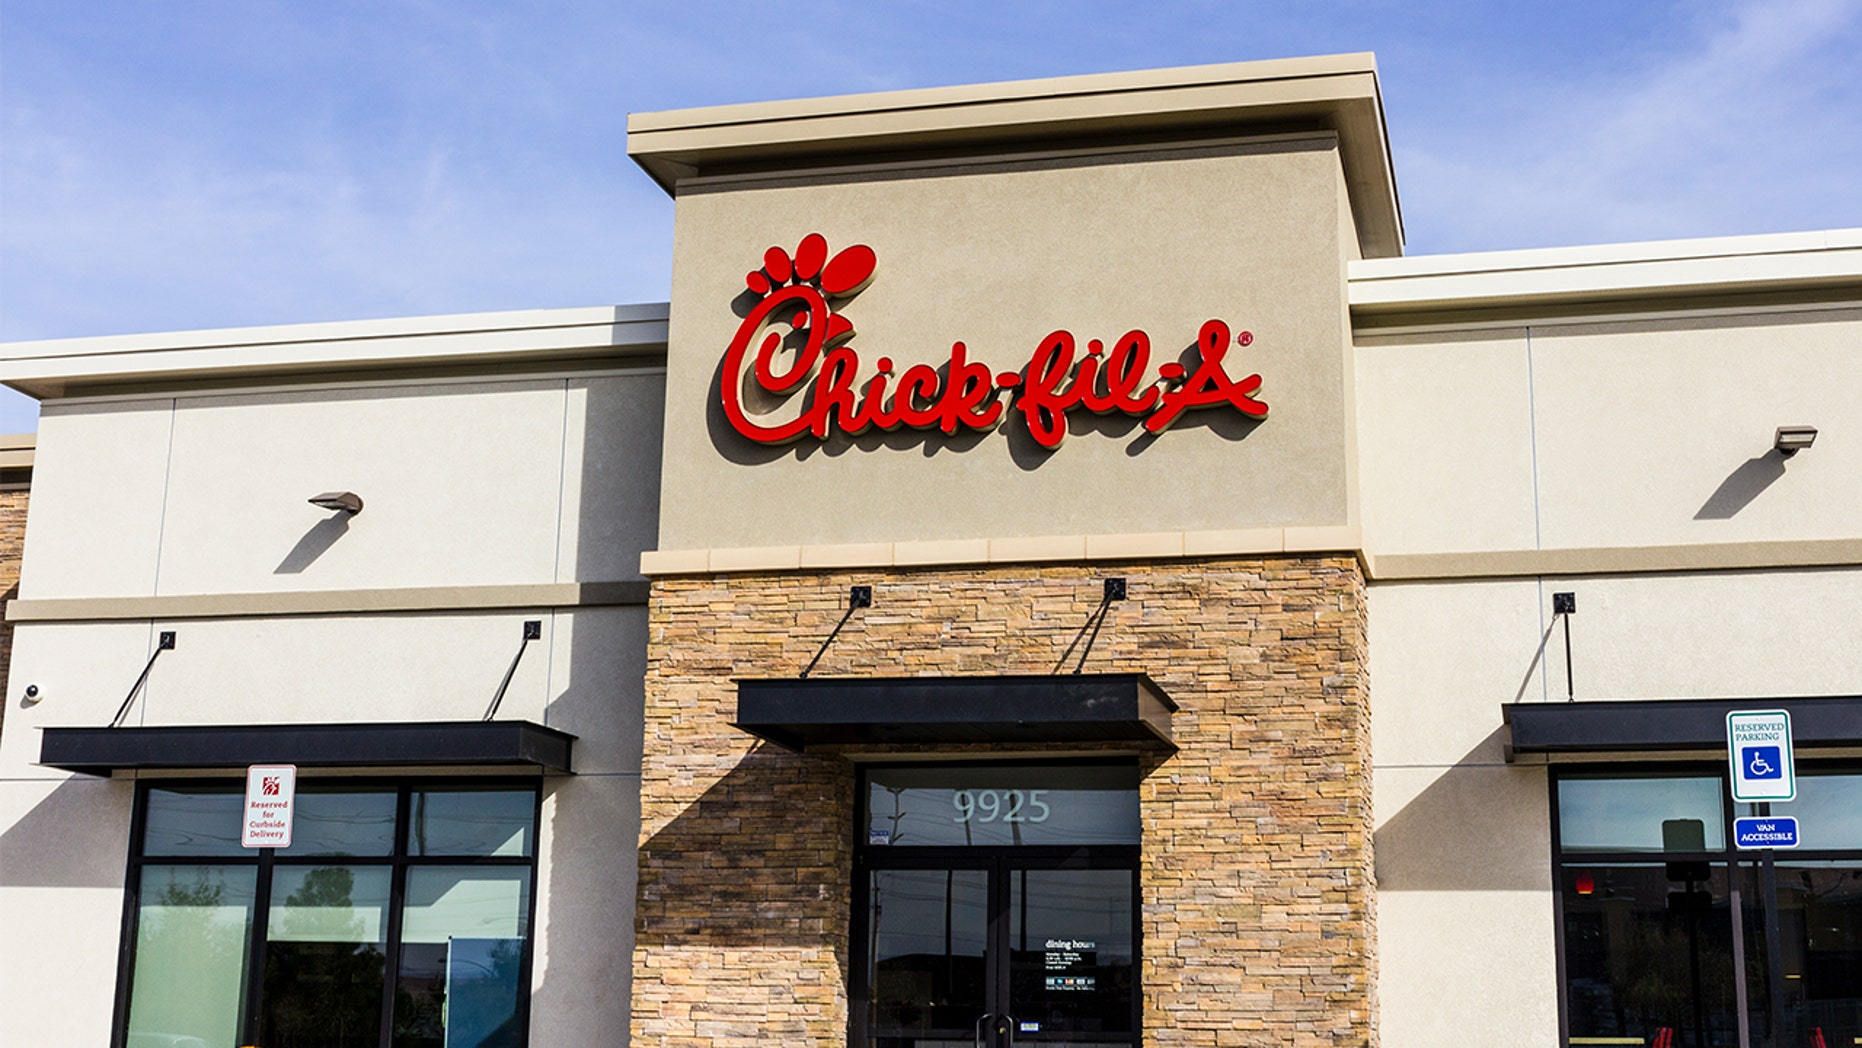 Chick-fil-A has an entire hidden menu with delicious twists on their classic items.